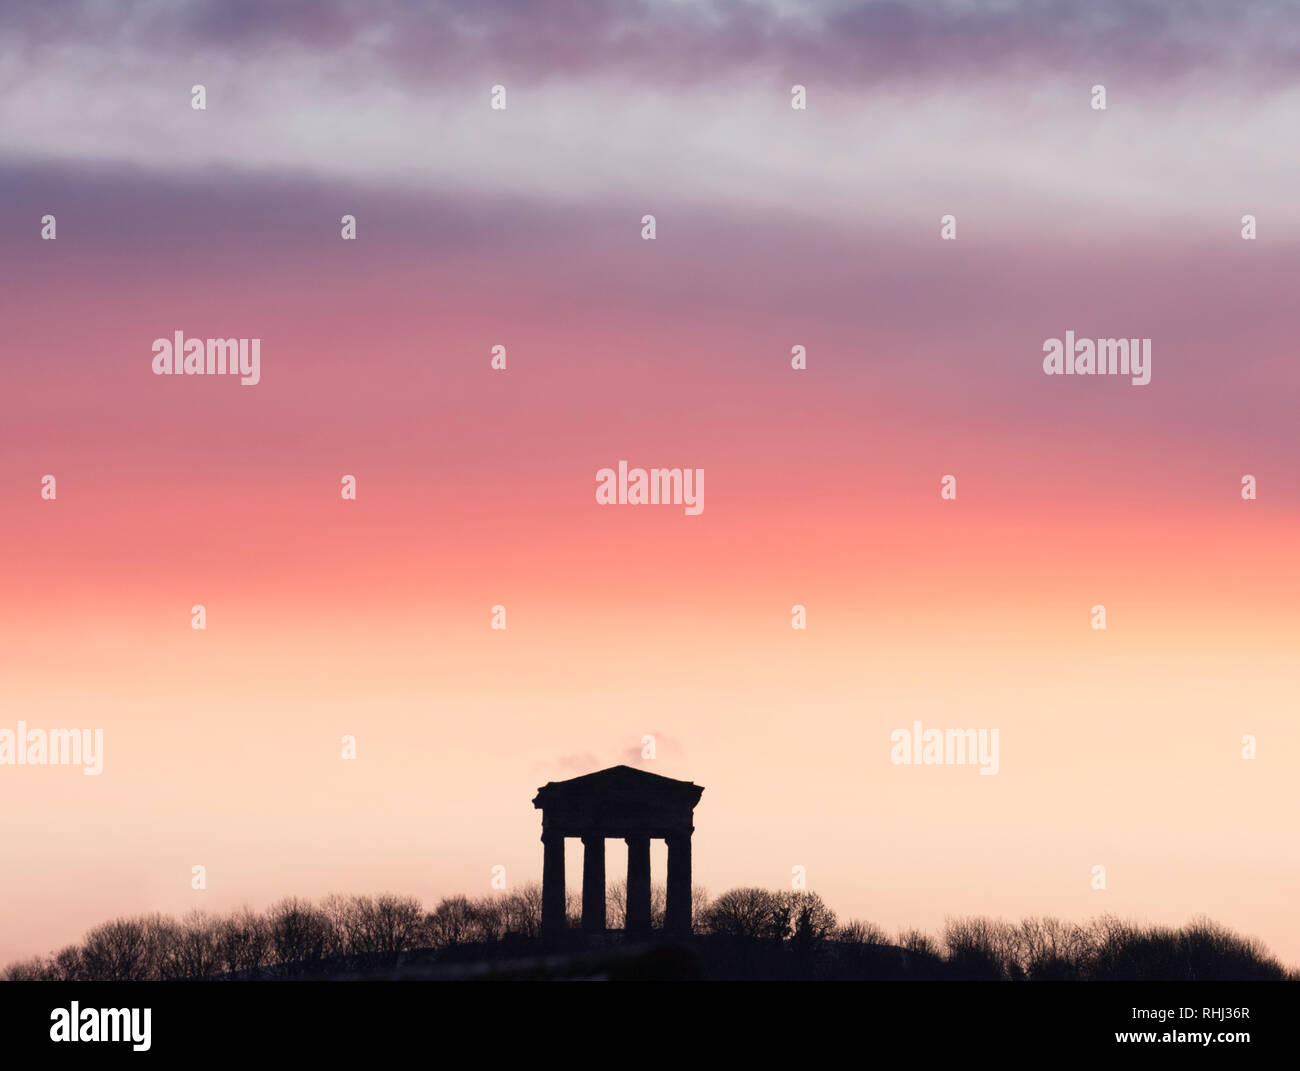 penshaw-uk-3rd-february-2019-red-sky-and